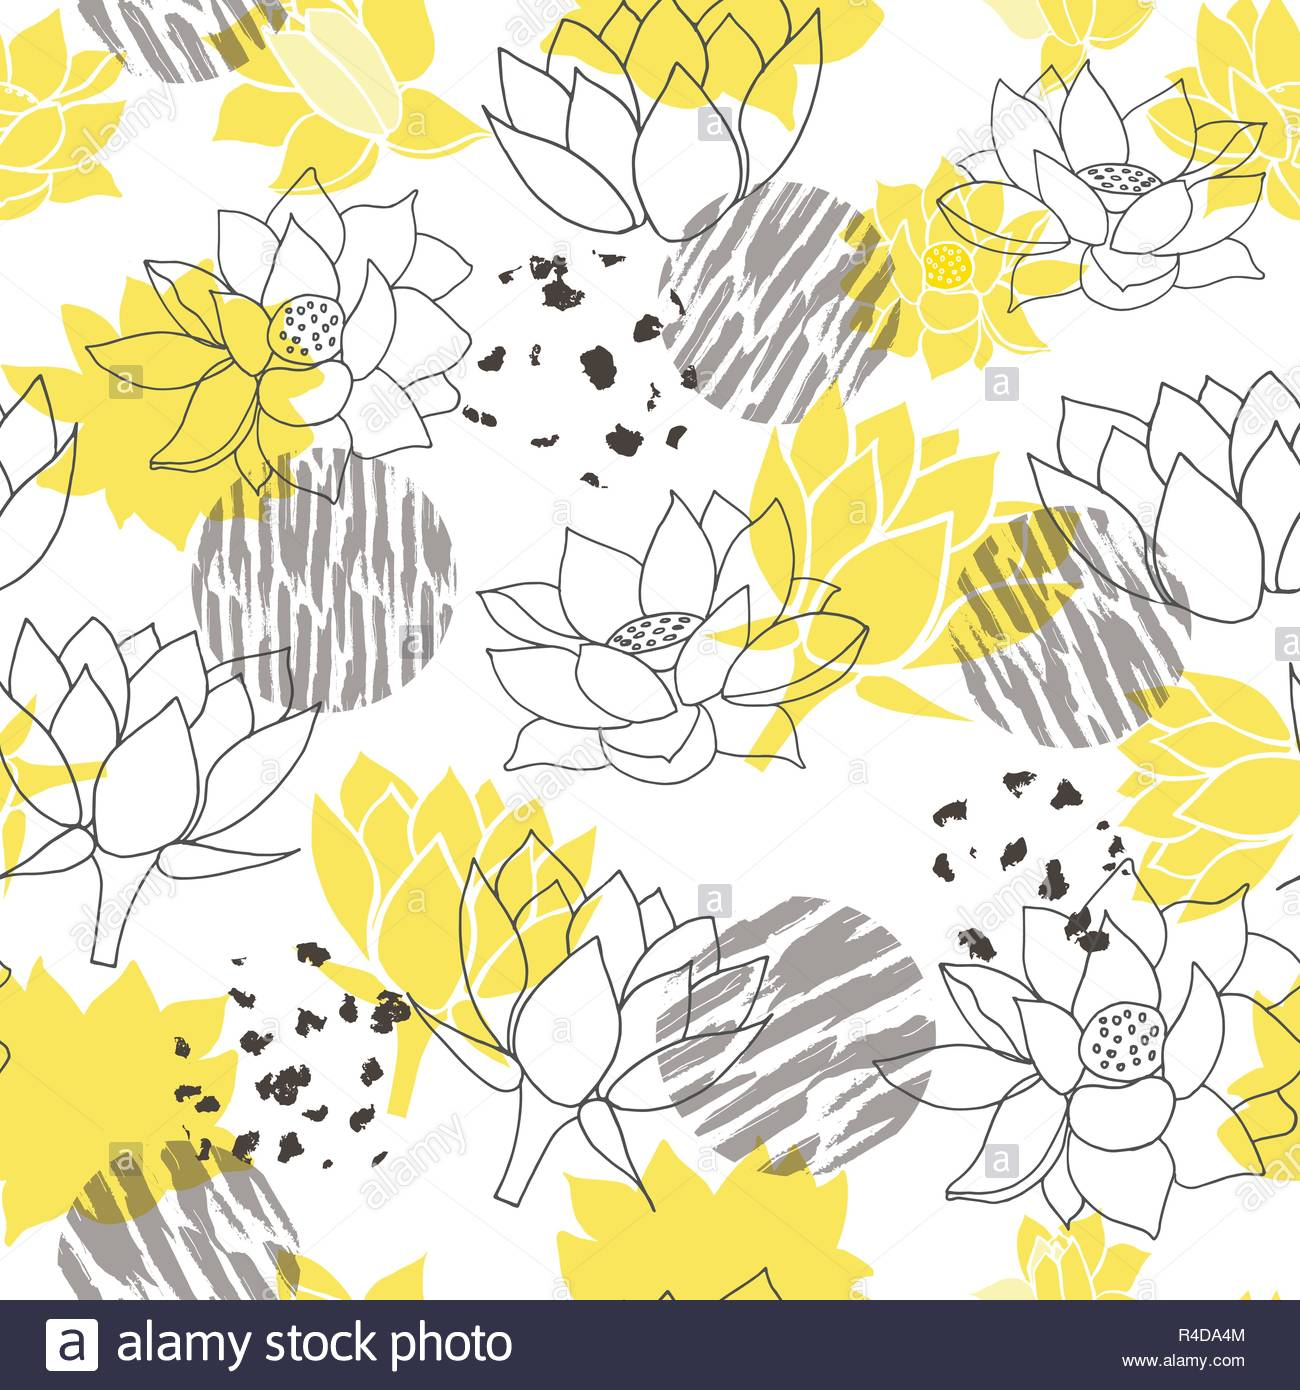 Trendy Abstract Yellow And Grey Waterlilies Or Lotus Flower Seamless